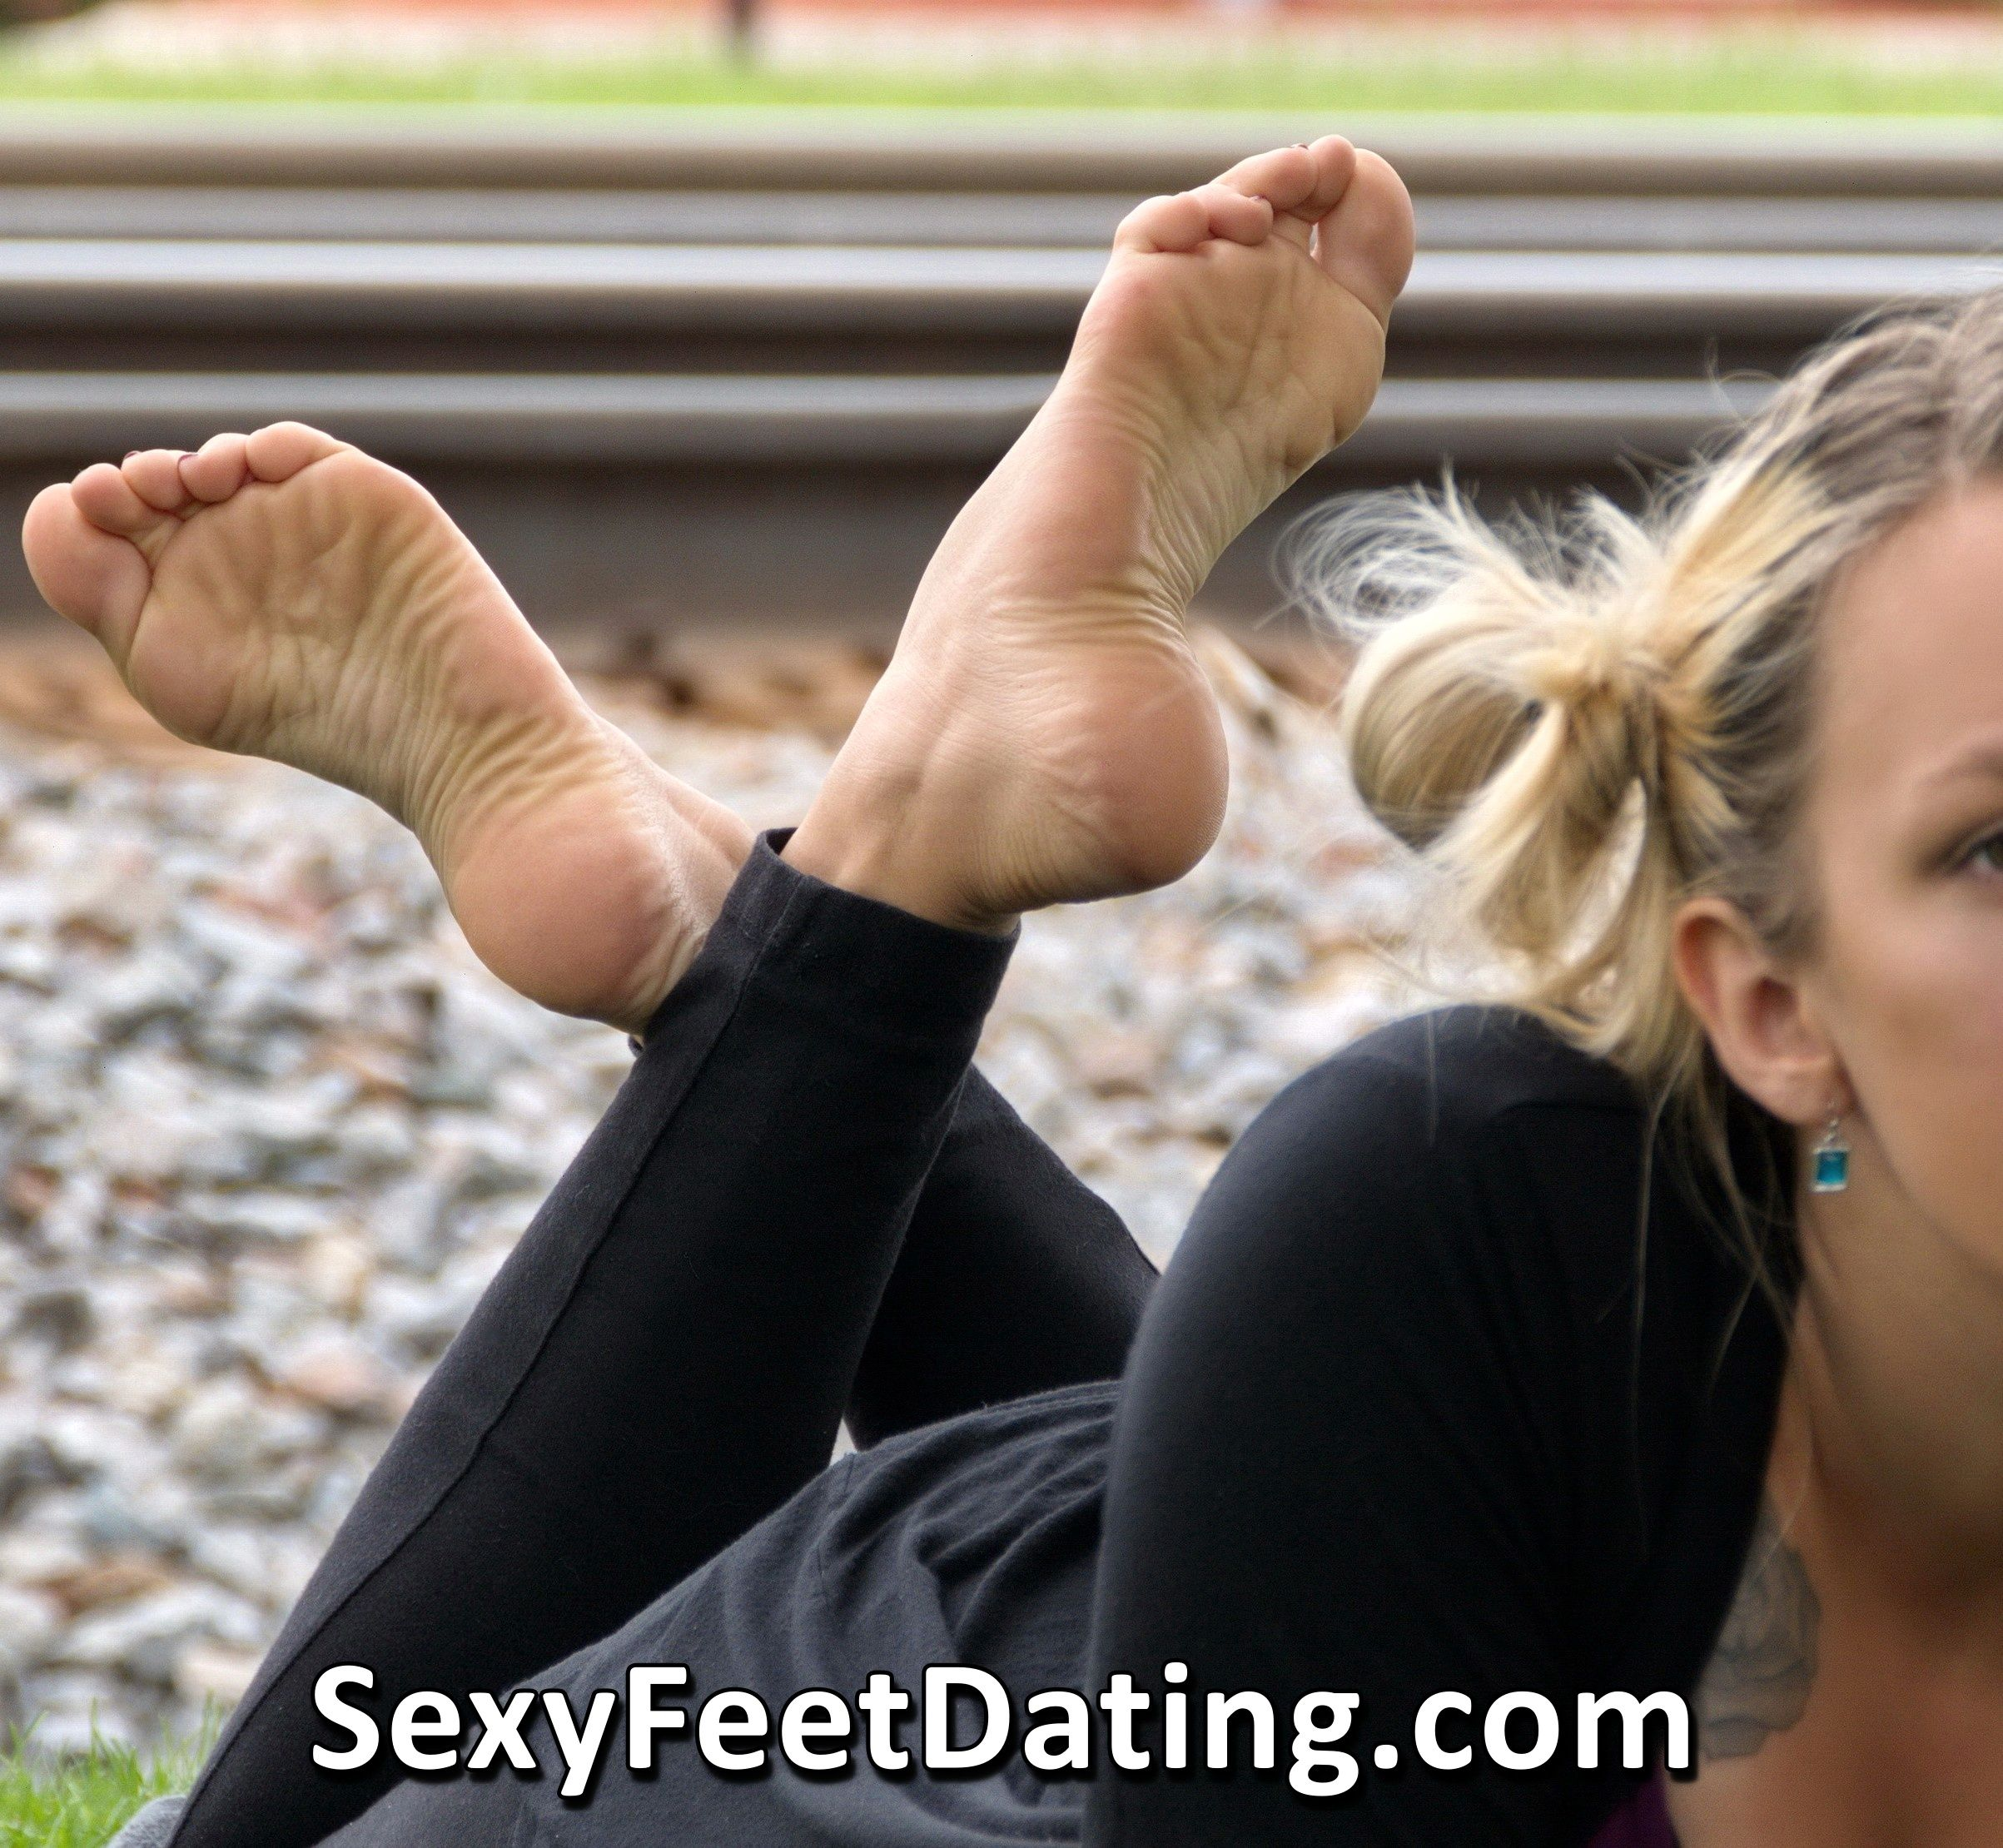 Foot dating